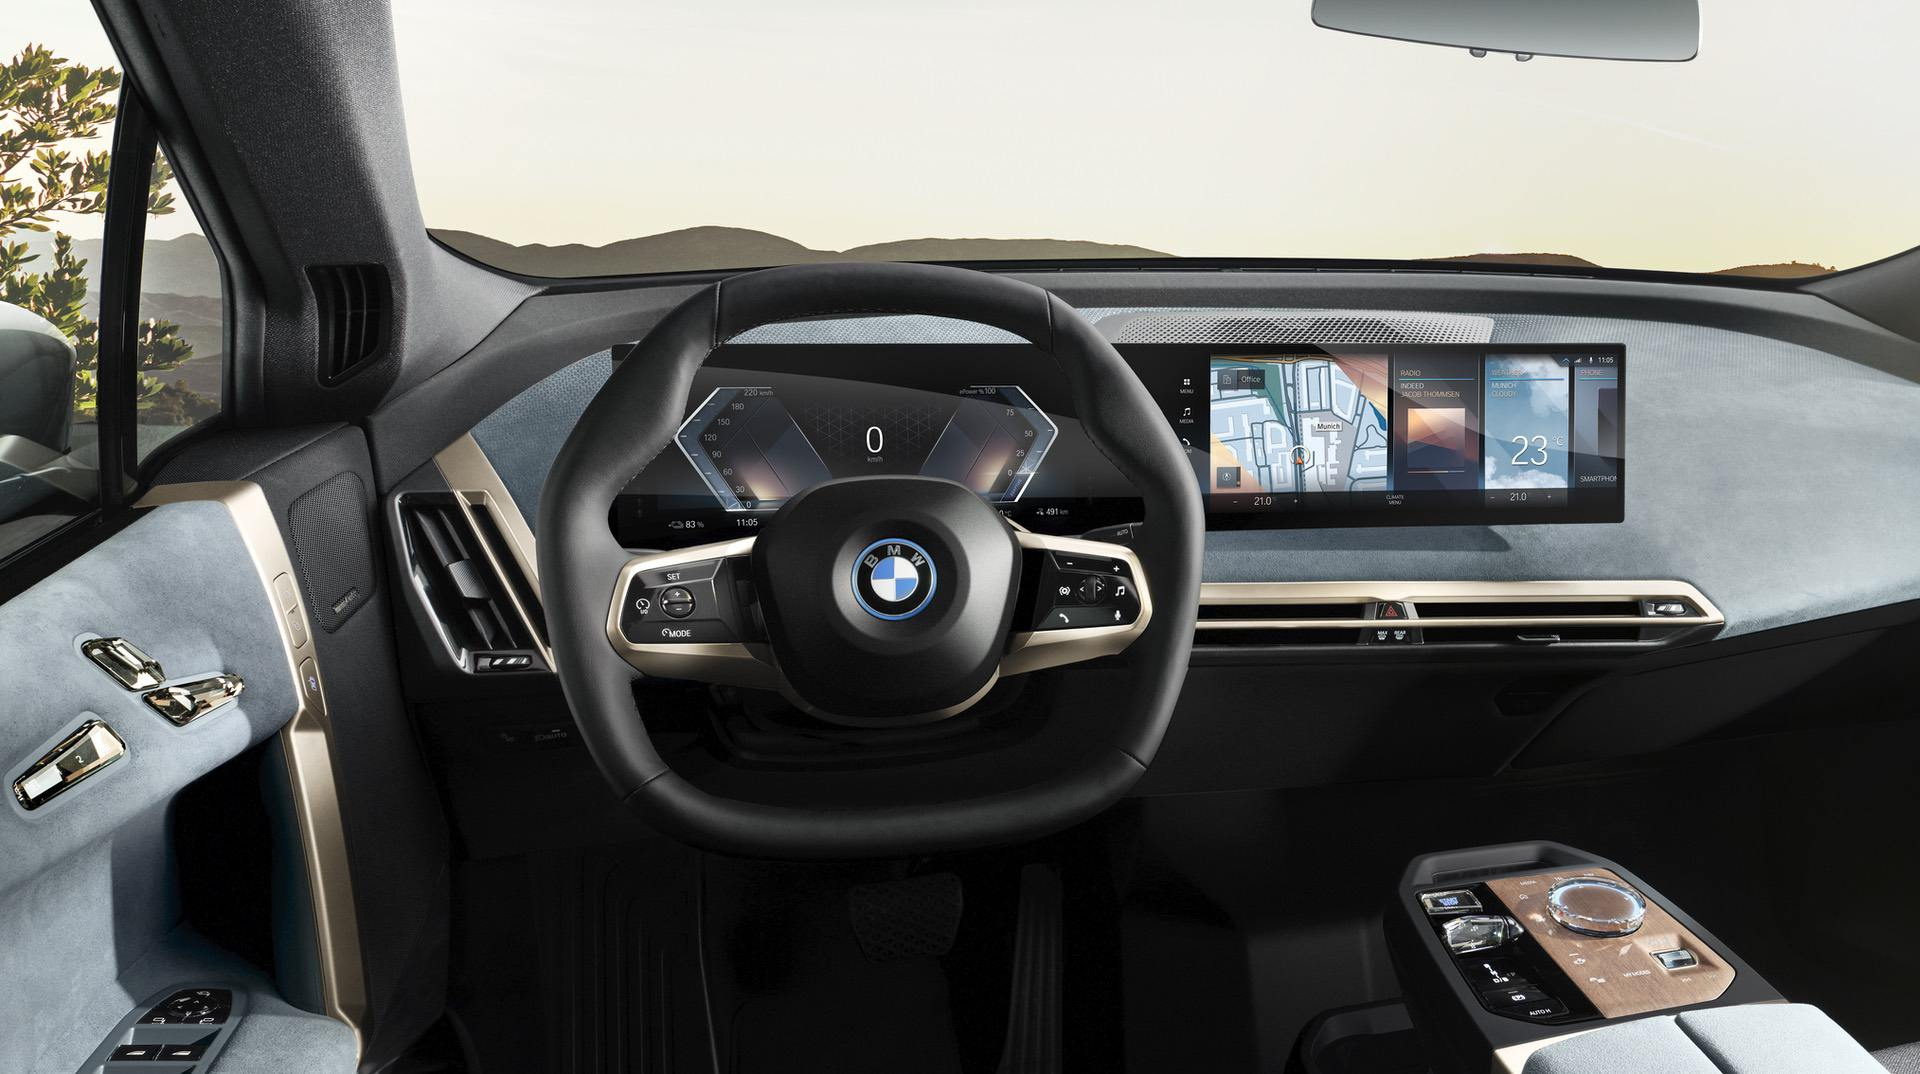 2022-bmw-ix-interior-10.jpg